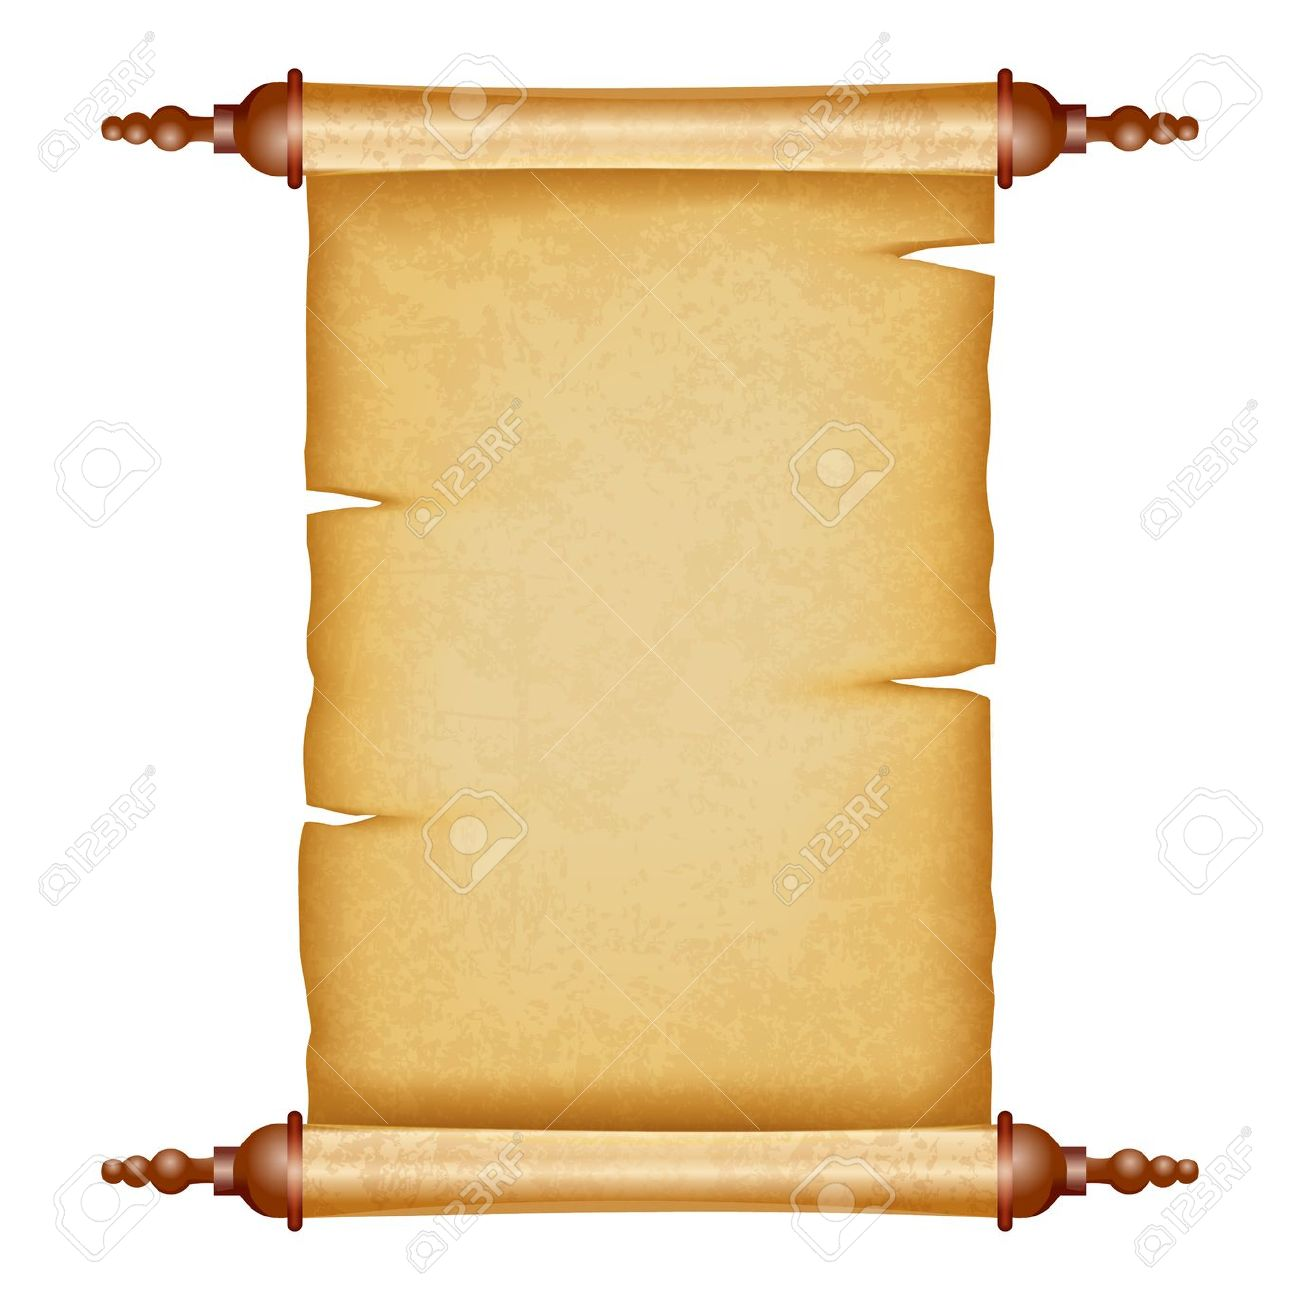 Ancient Letter Roll PNG - 160449